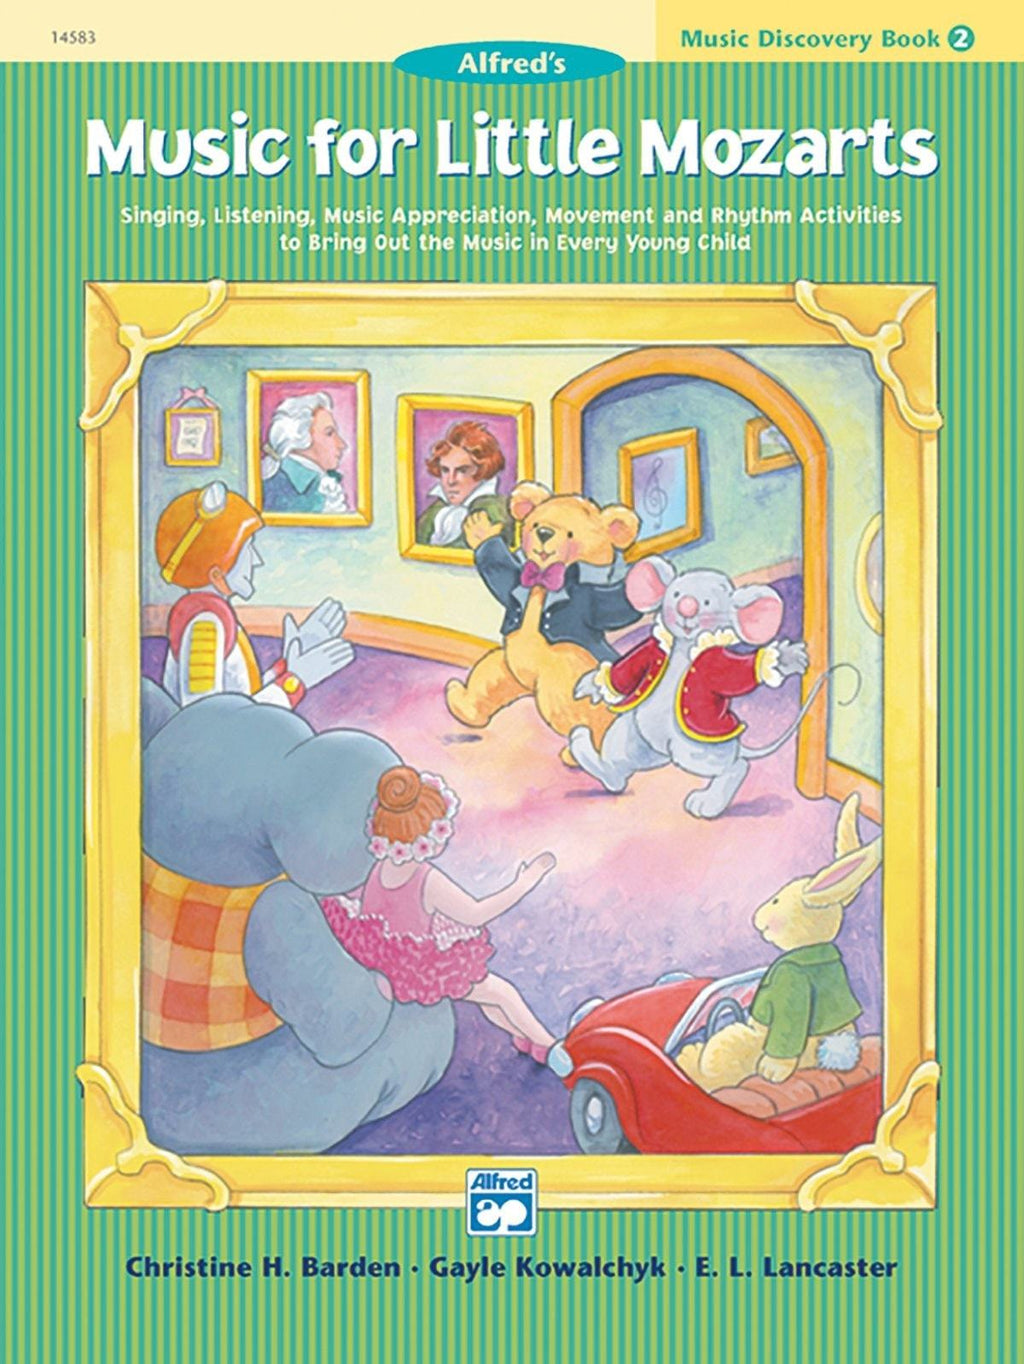 Music For Little Mozarts | Music Discovery Book 2